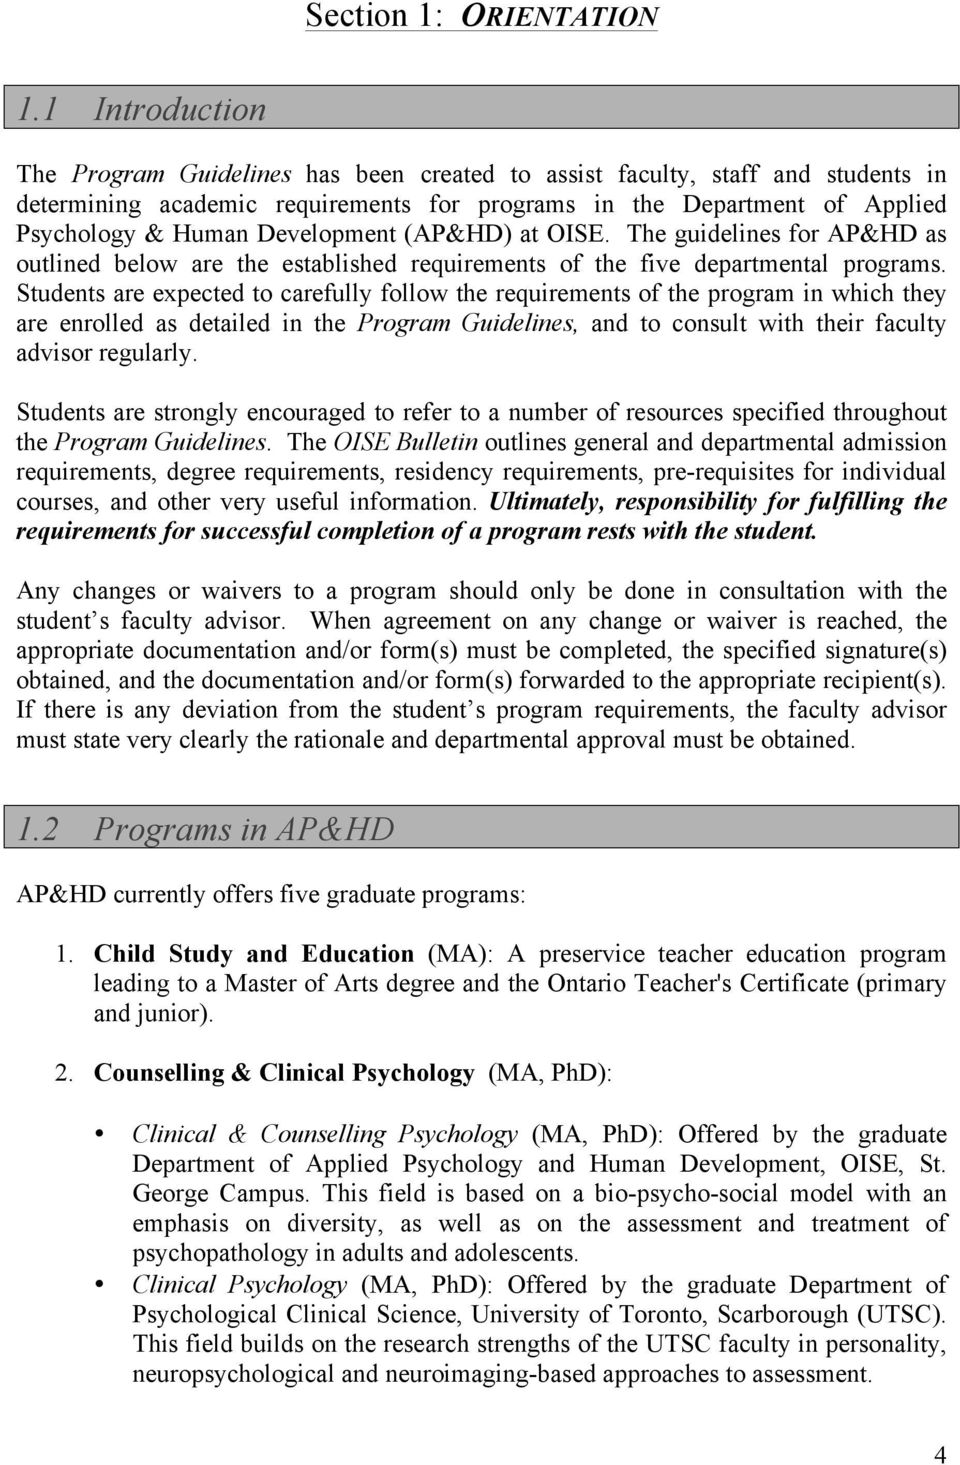 Development (AP&HD) at OISE. The guidelines for AP&HD as outlined below are the established requirements of the five departmental programs.